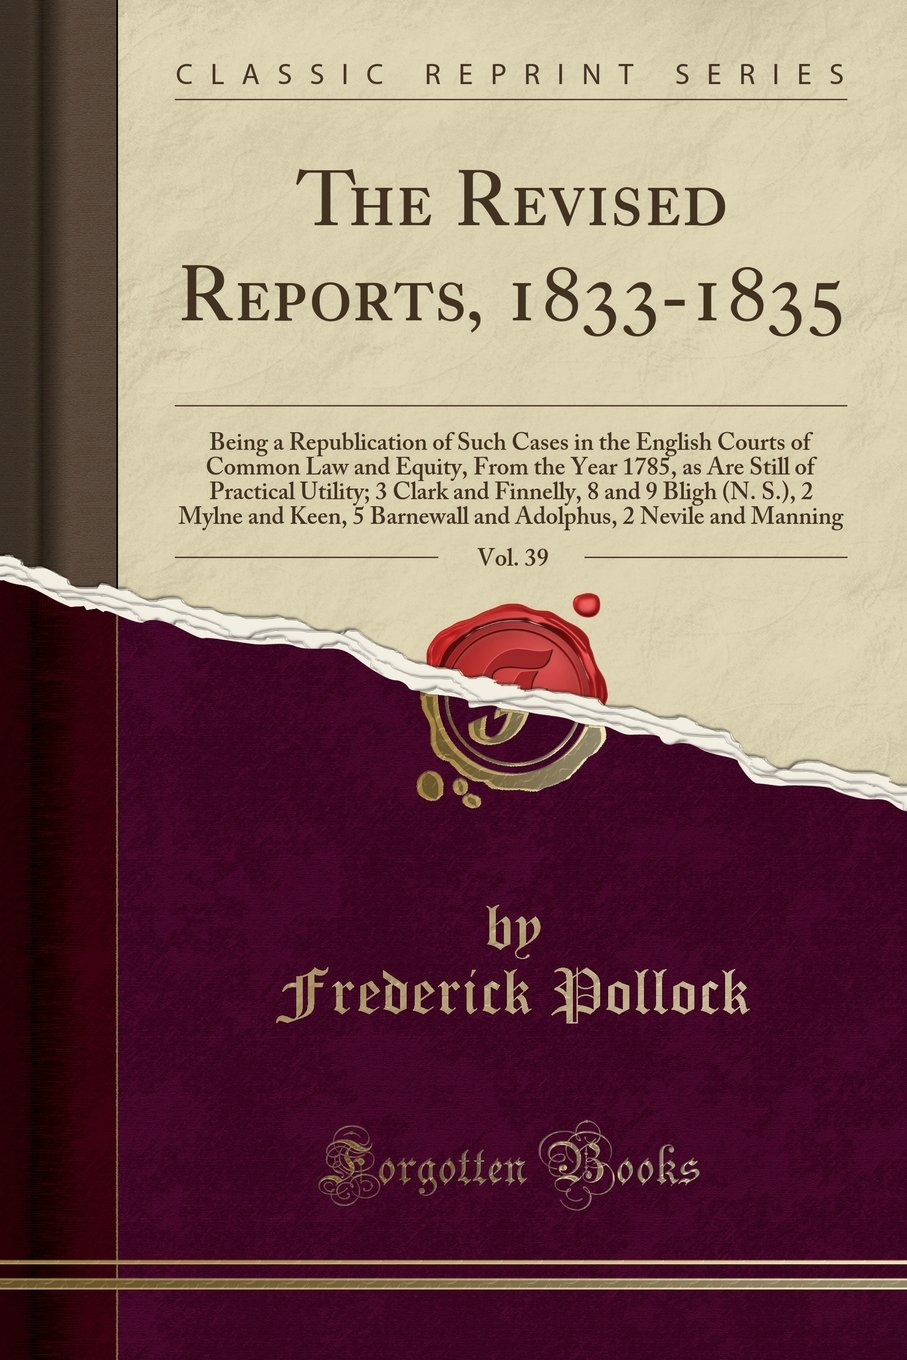 Download The Revised Reports, 1833-1835, Vol. 39: Being a Republication of Such Cases in the English Courts of Common Law and Equity, From the Year 1785, as ... Bligh (N. S.), 2 Mylne and Keen, 5 Barnewall PDF